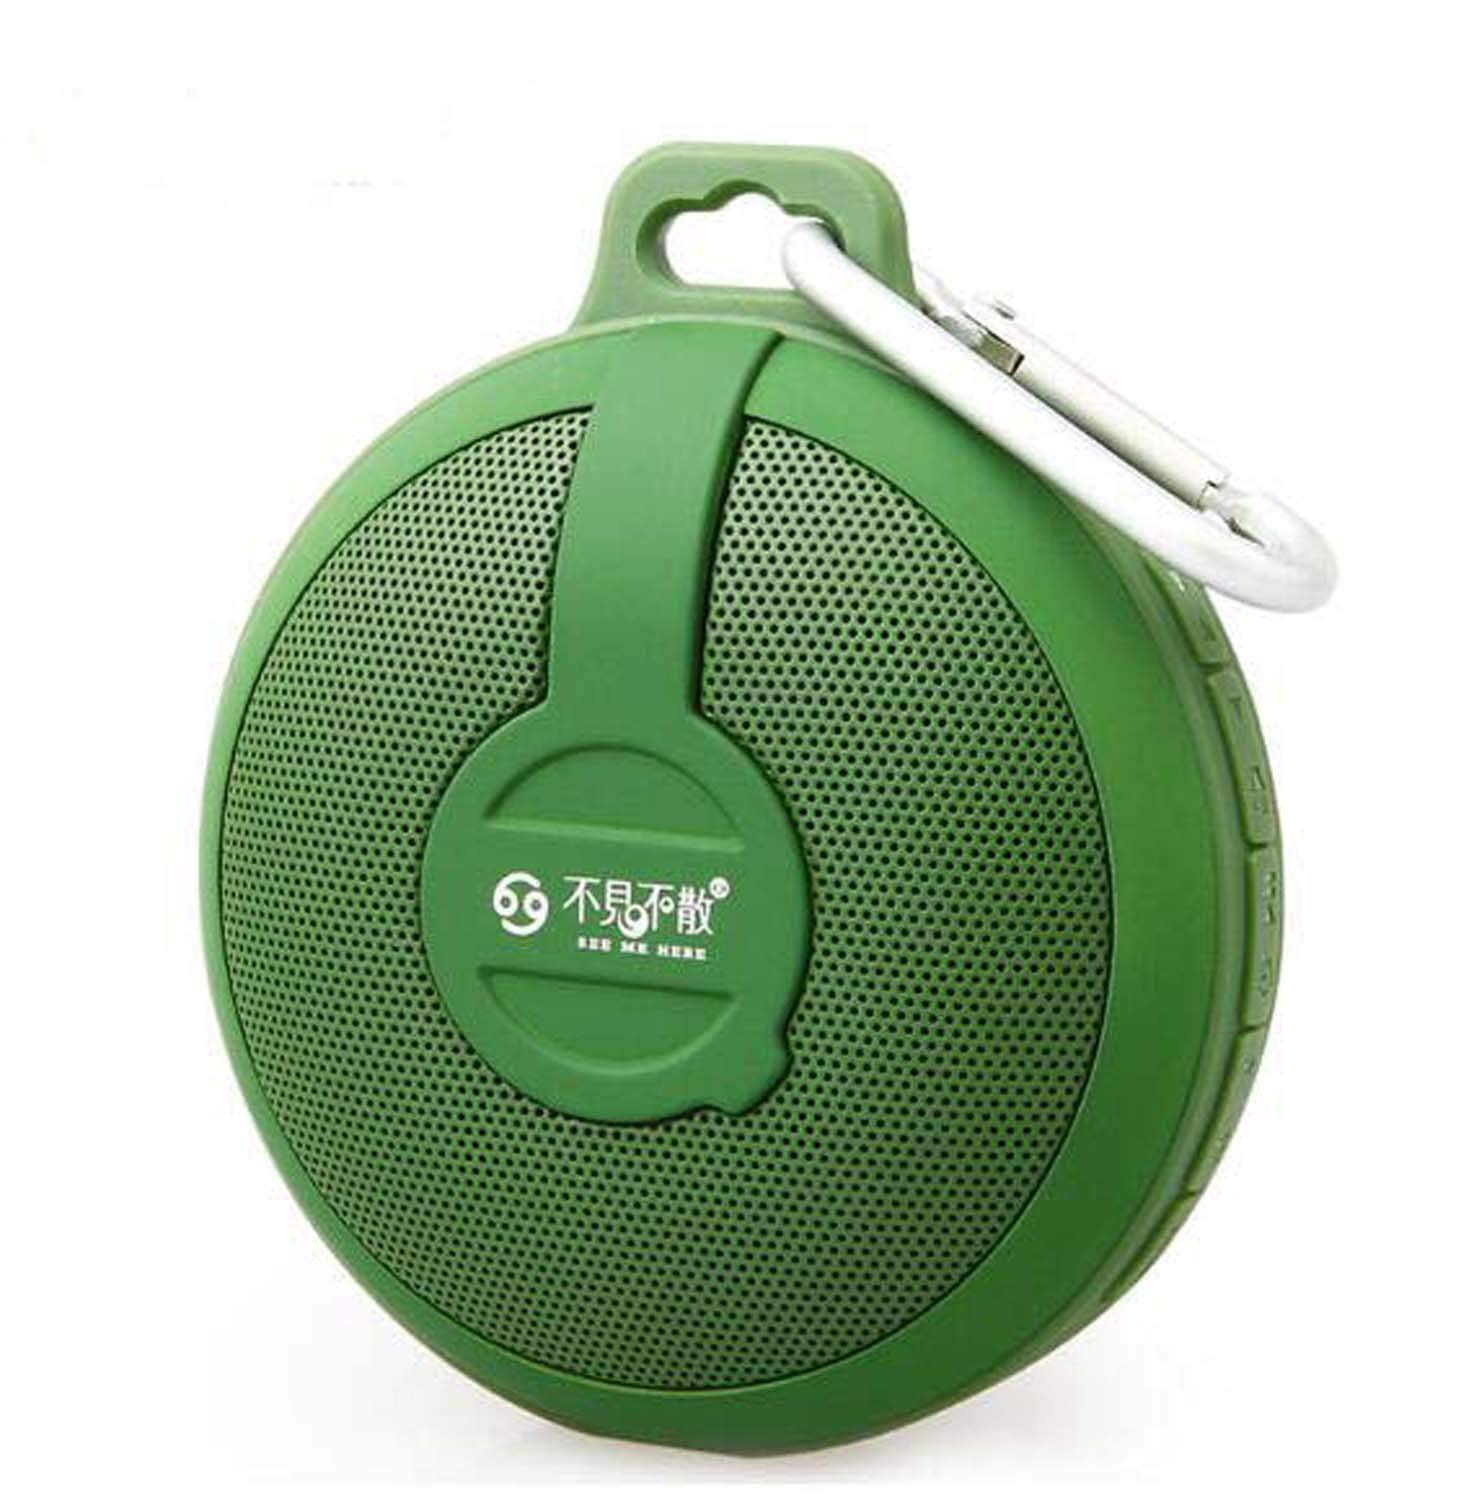 Hzhy Bluetooth Speaker Wireless Outdoor Card Bluetooth Speaker Mini Portable Stereo Subwoofer (Red, Green, Dark Blue, Lakeside Blue) (Color : Green)